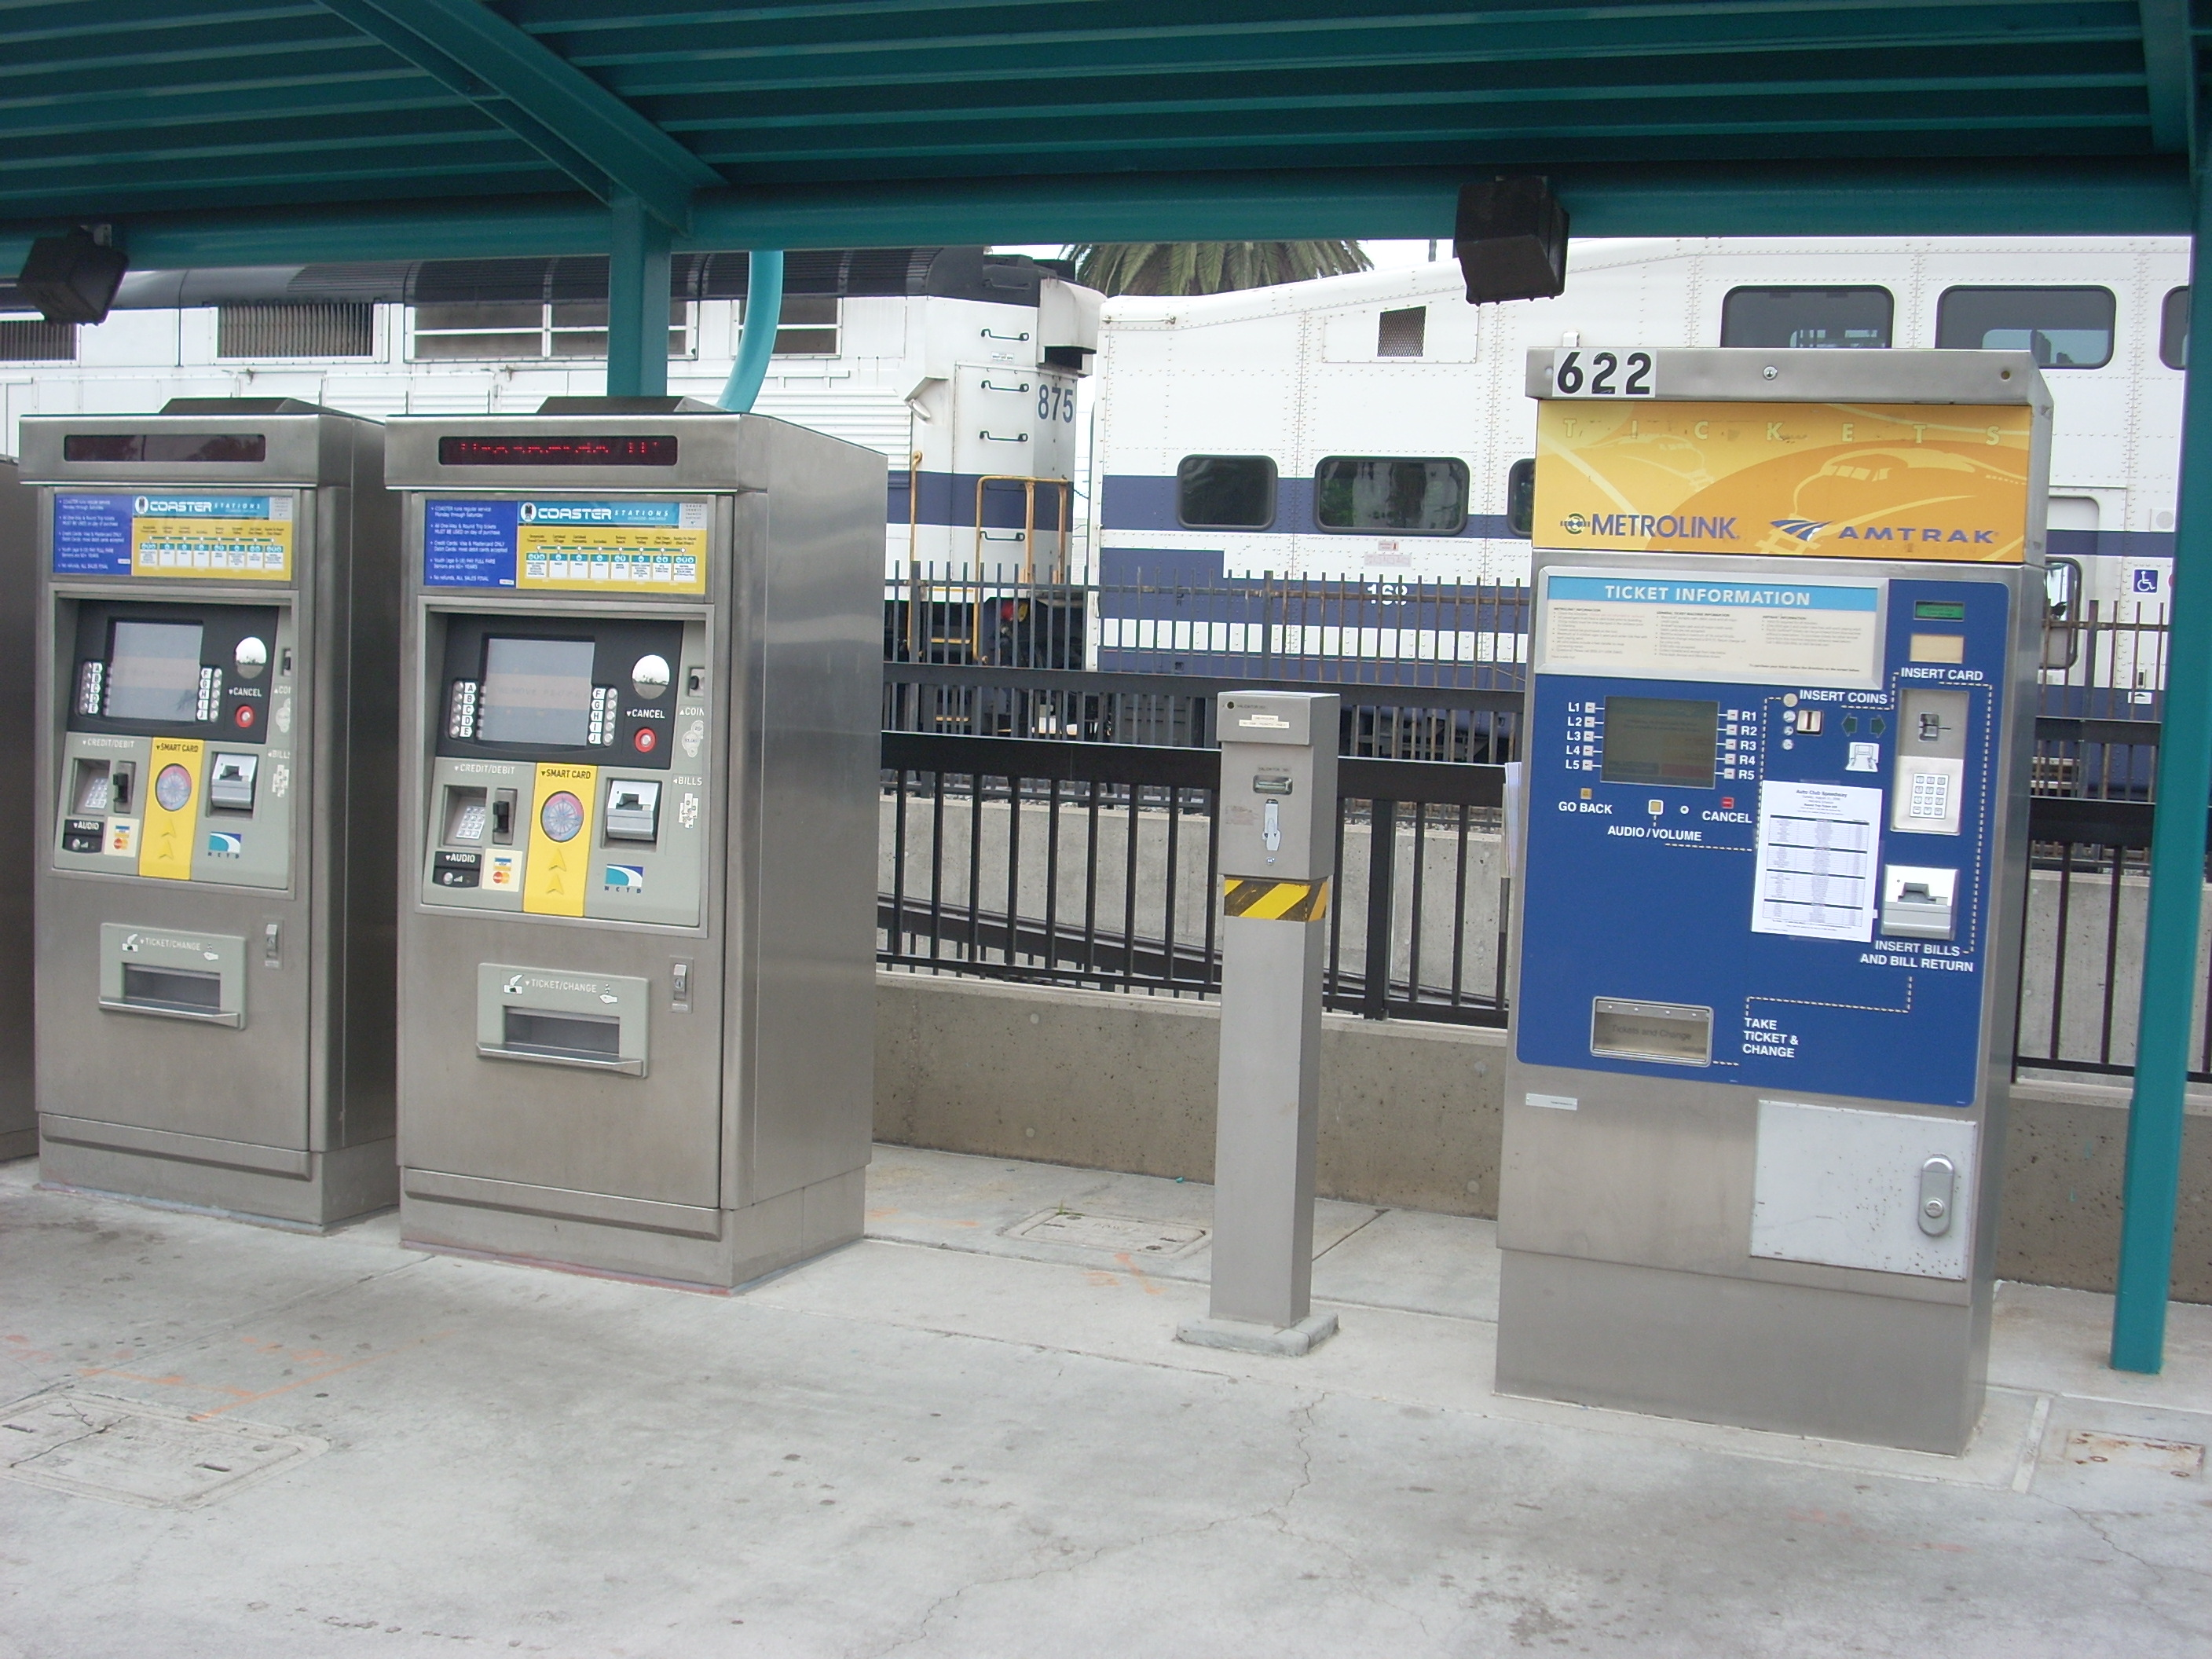 Compass Amp Fare Gates Completed Page 176